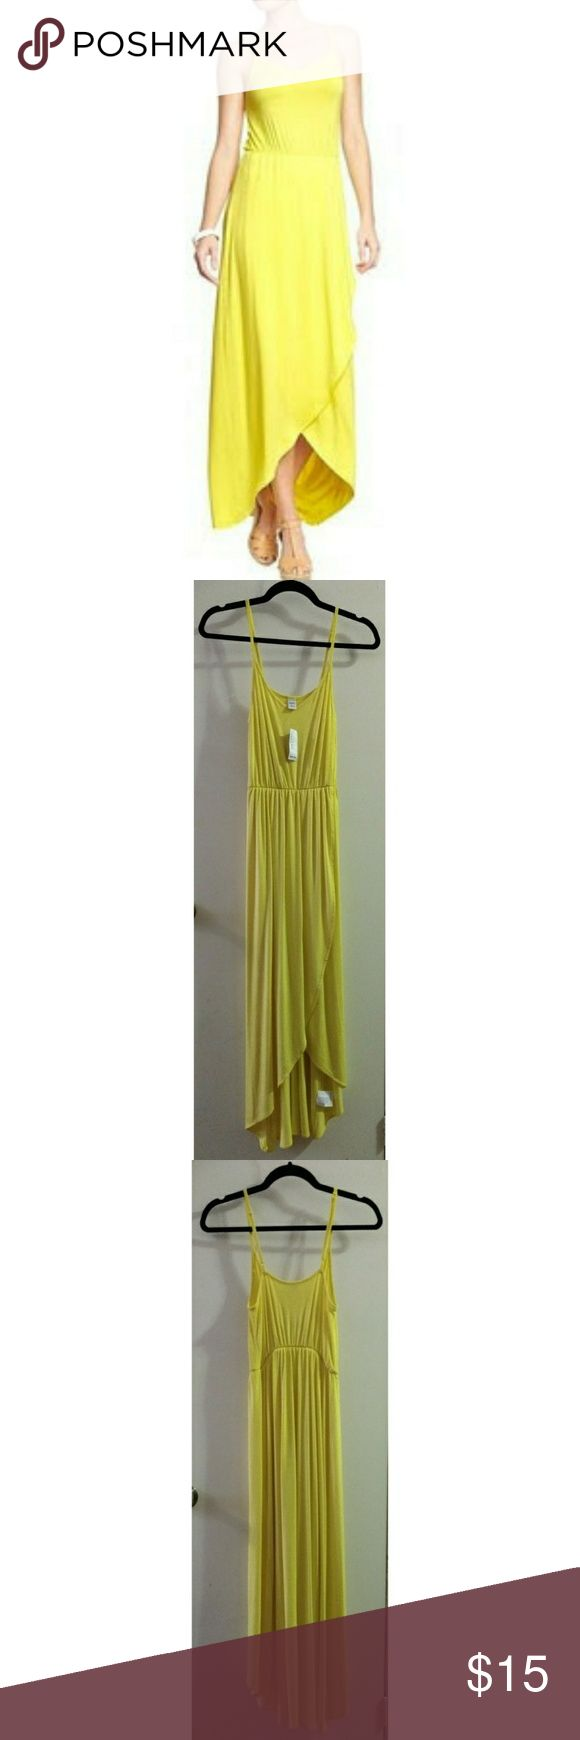 "Tulip Petal Effect  Cami Maxi Dress by Old Navy Condition: NWT // Size: XS// Color(s): Lemon Pucker (Yellow)// Pattern: Solid// ​Cut: Scoop V-Neck, Tulip Petal Front Skirt// Material: 95% Rayon, 5% Spandex// Lining: None// Extra Details: Adjustable Straps, Elasticized waistband// Length (I'm 5'4"")​: Ankle Length GAP Dresses Maxi"